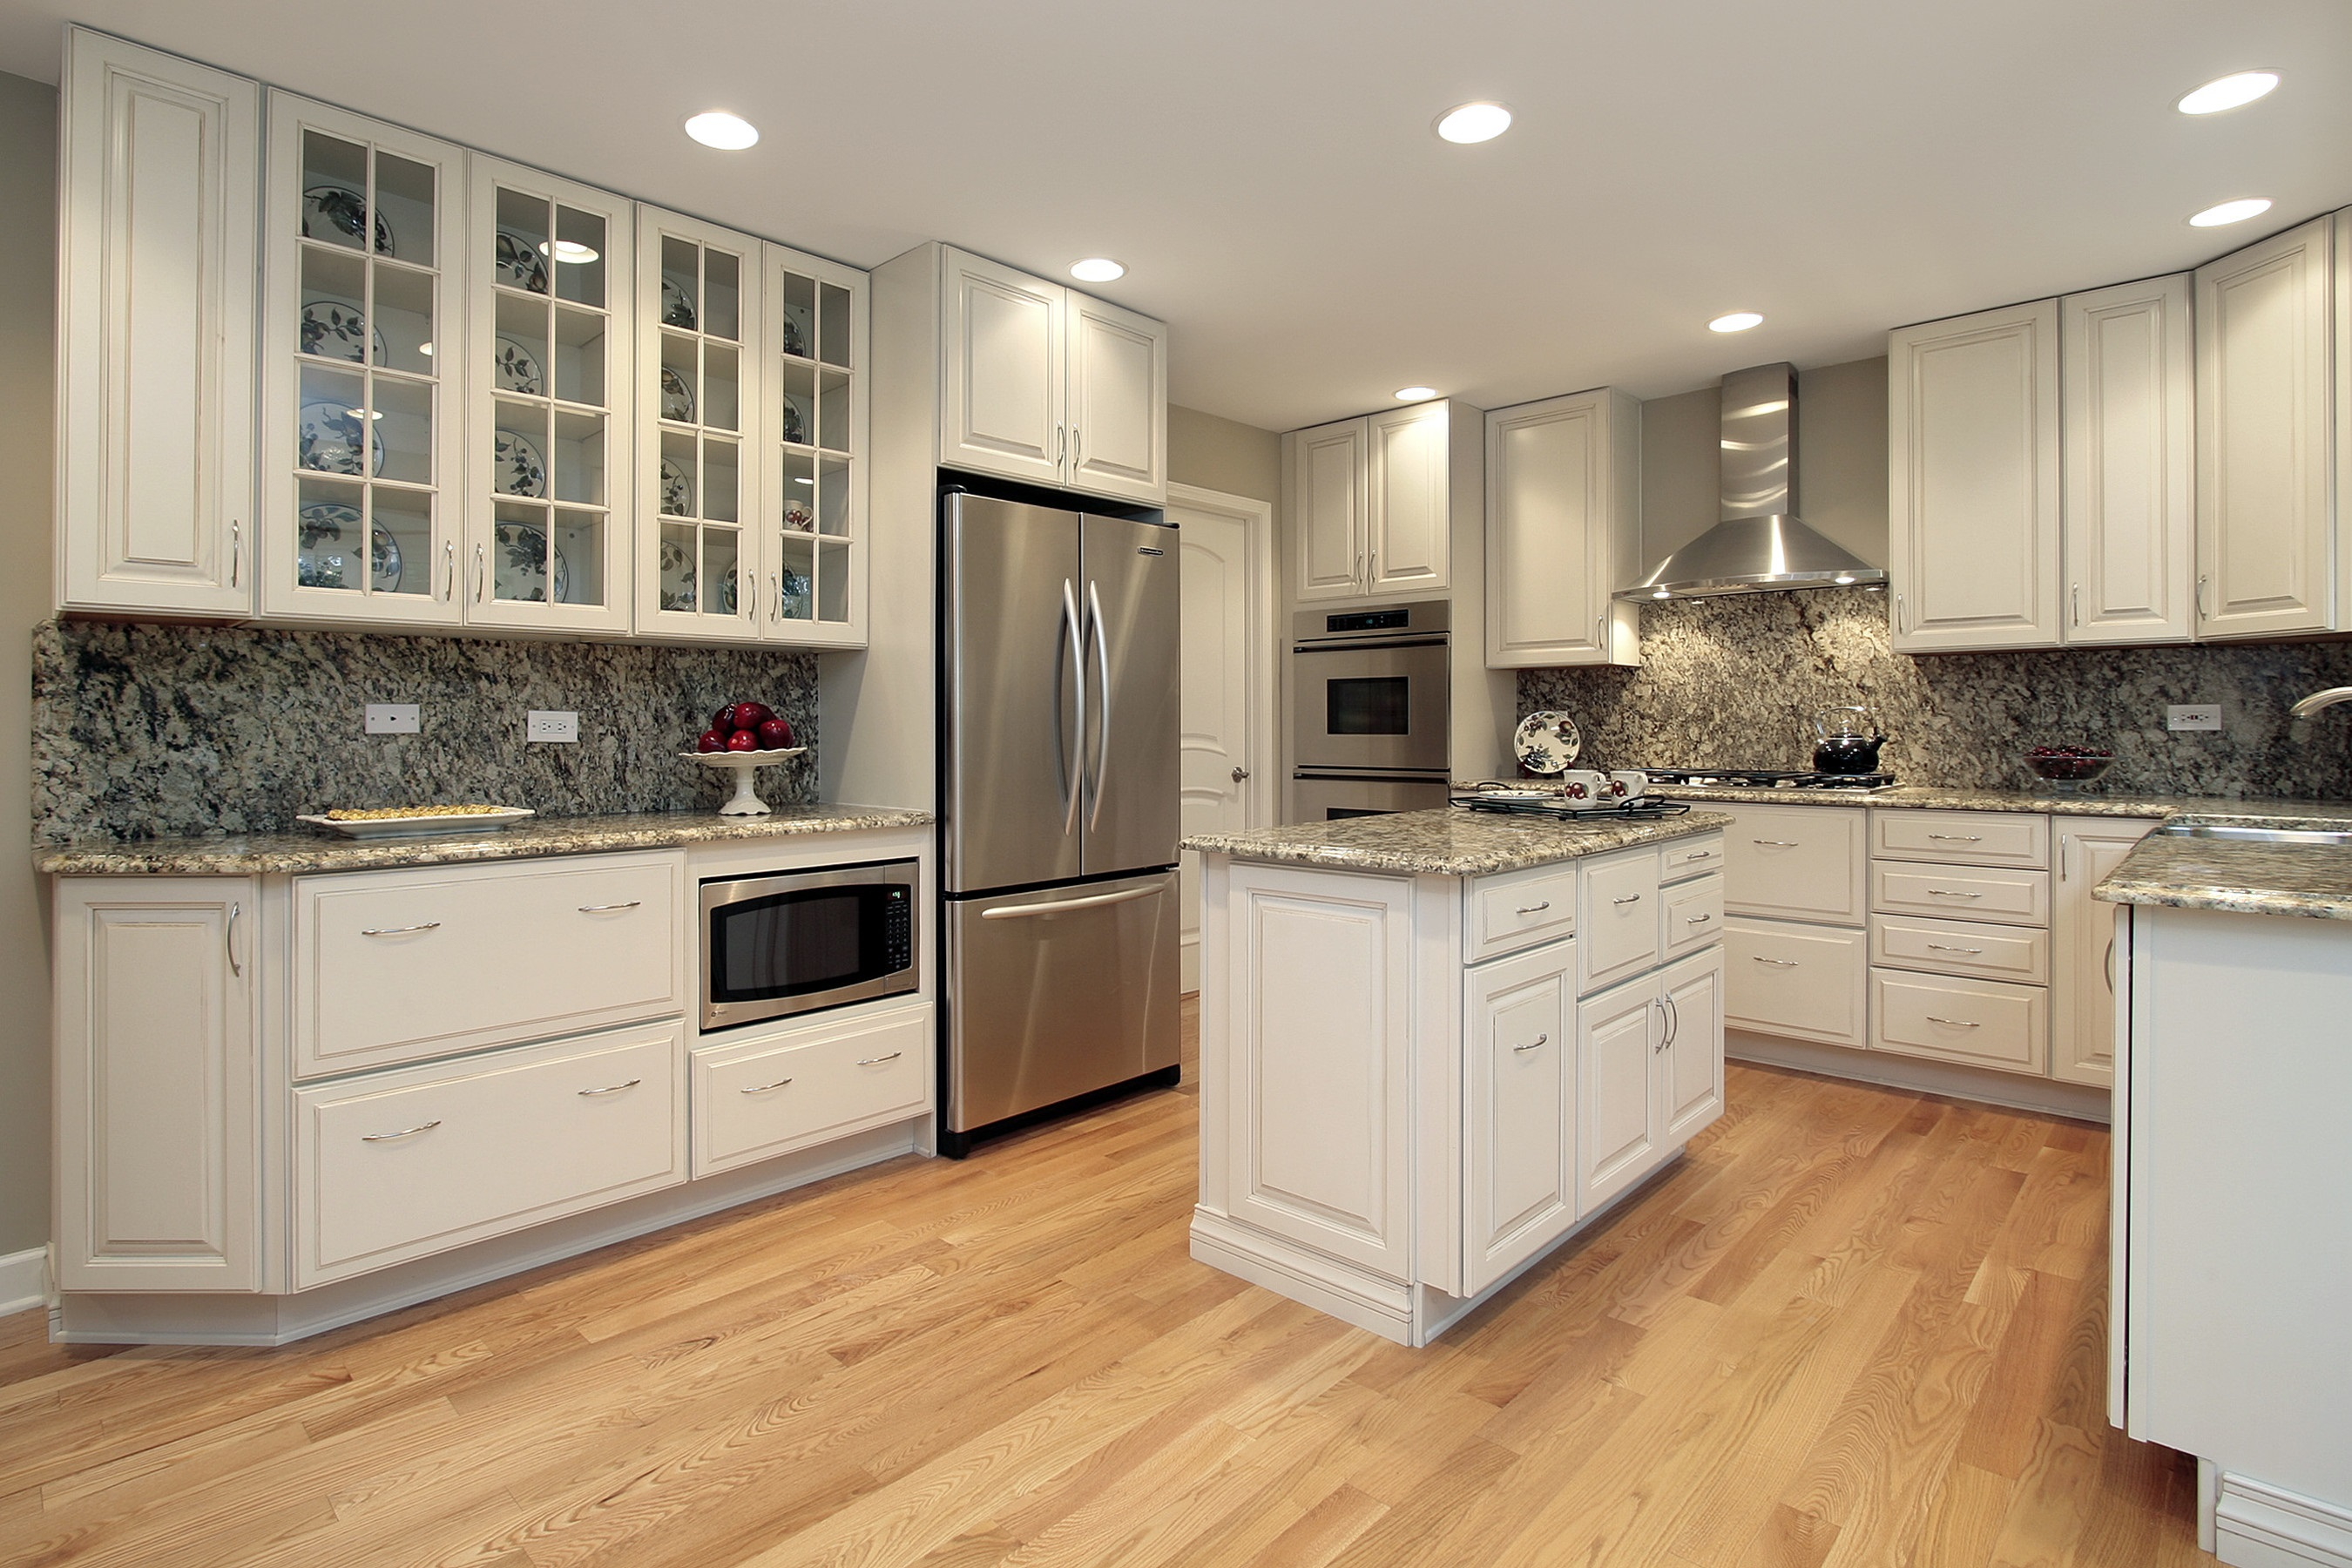 How a Kitchen Facelift can make your kitchen look brandew